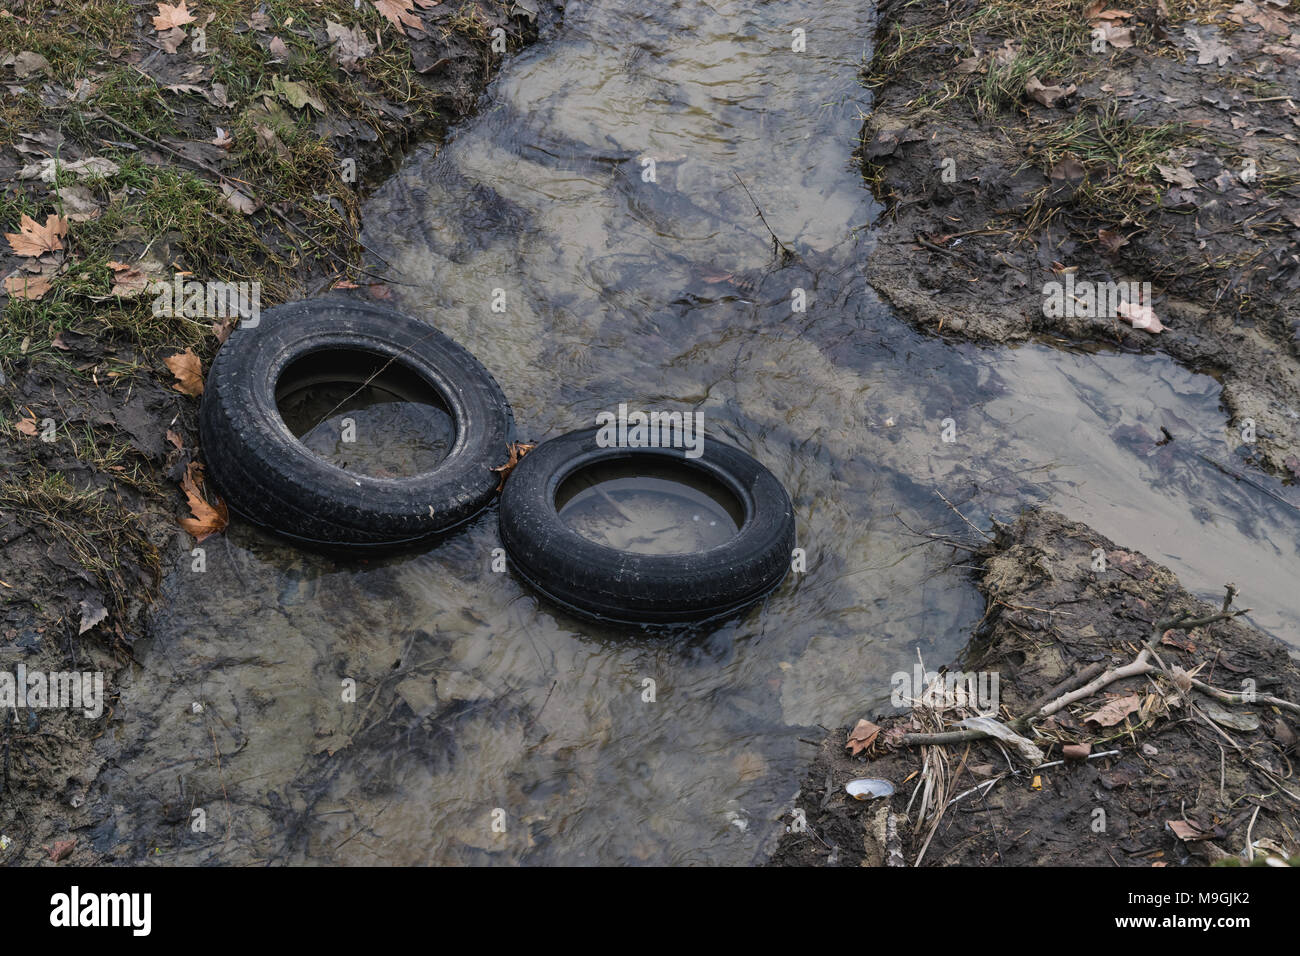 Two tires in a river, pollution concept. - Stock Image